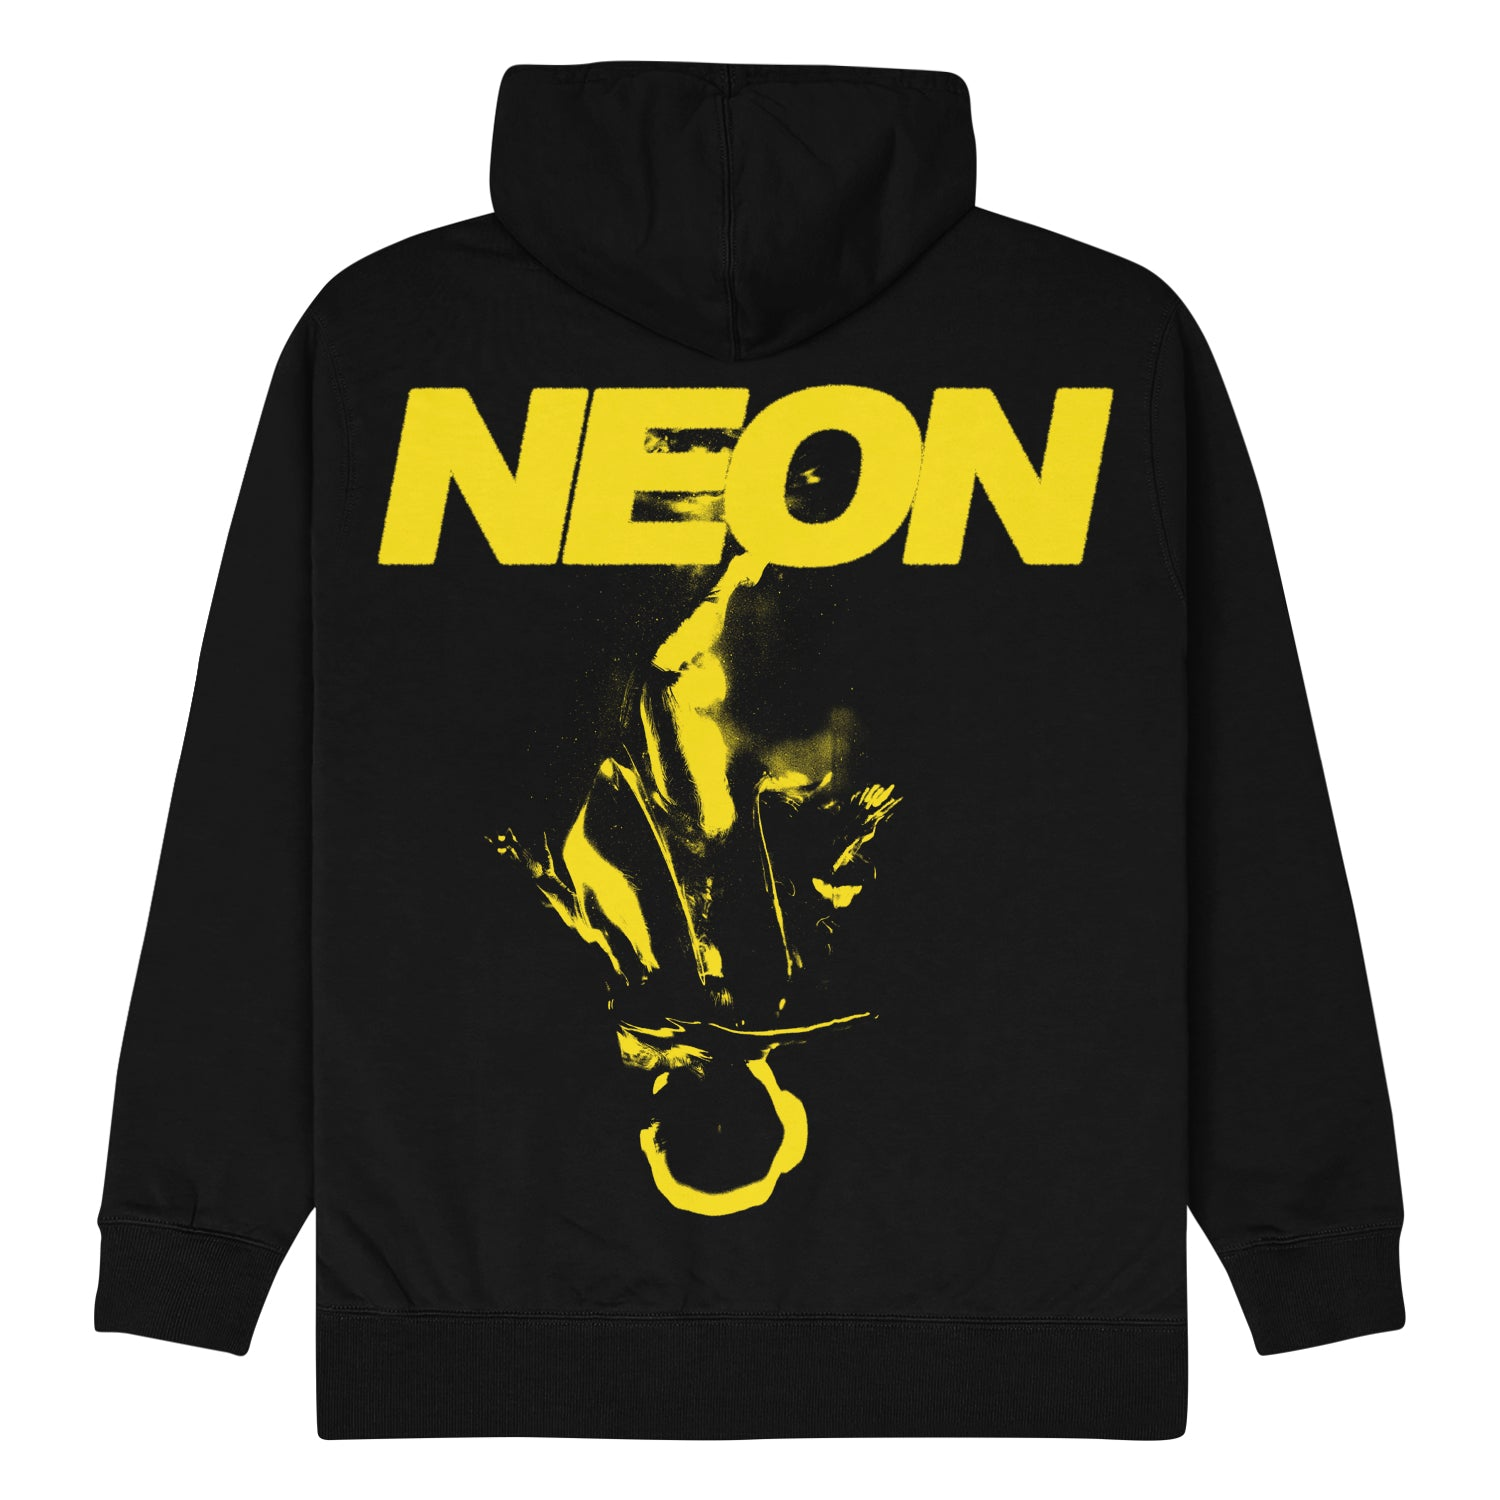 Neon Yellow on Black